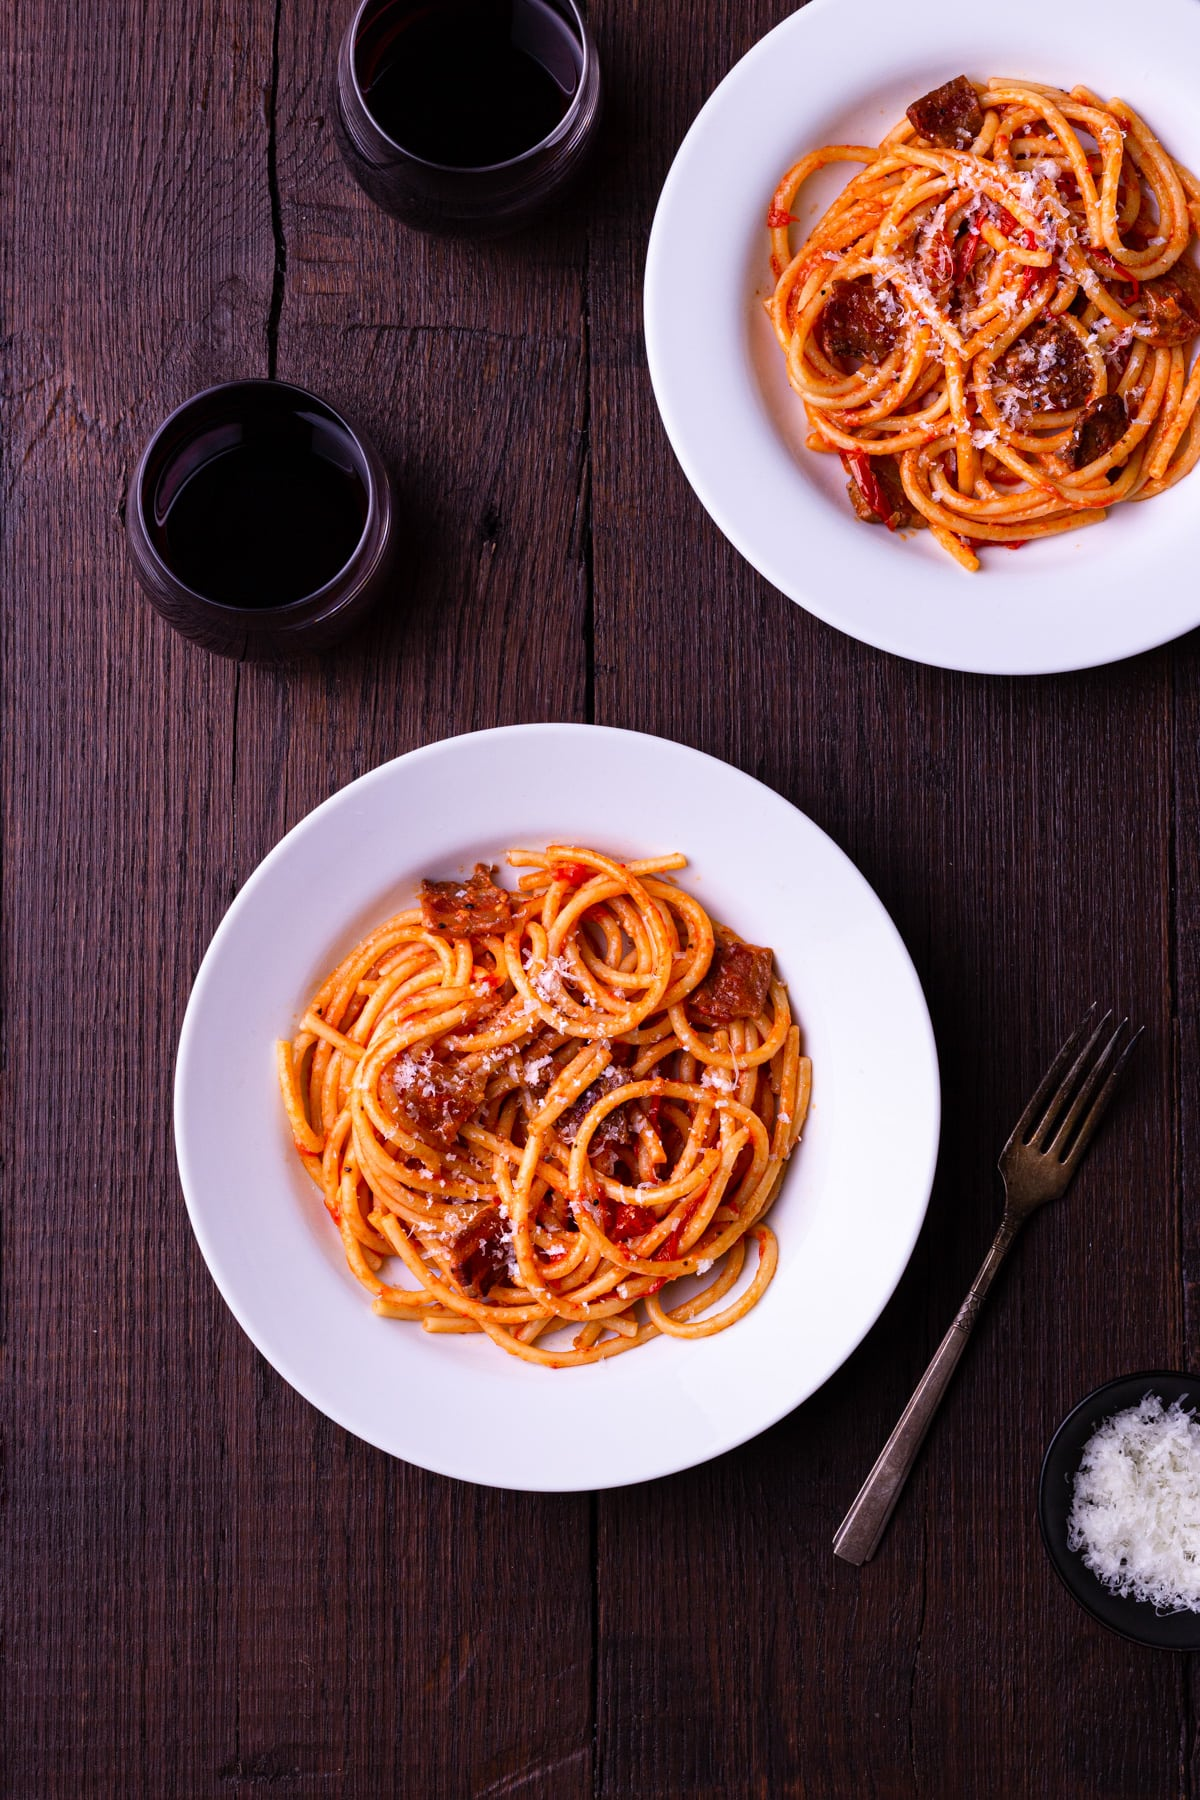 Two bowls of pasta with Amatriciana sauce topped with grated pecorino cheese, surrounded by glasses of red wine and a fork.